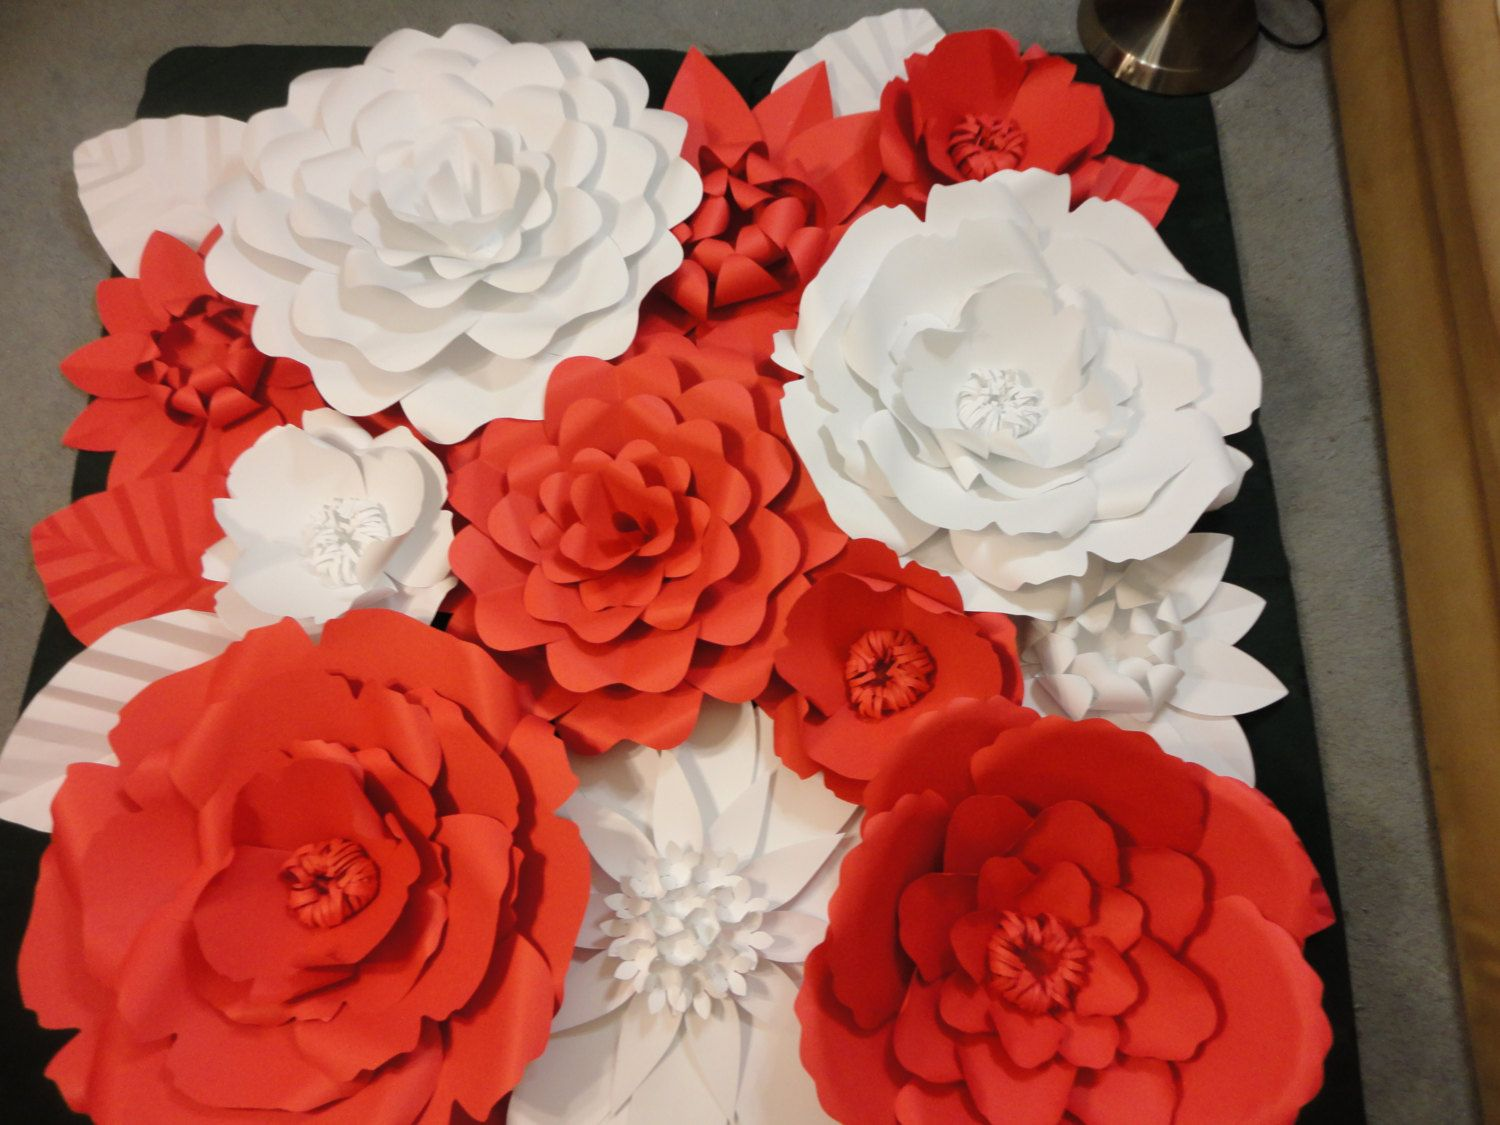 Red paper flower wall 5 ft x 5 ft extra large paper poshstudios items similar to red paper flower wall 5 ft x 5 ft extra large paper flowers decoration photo backdrop prop valentines day decor on etsy dhlflorist Choice Image